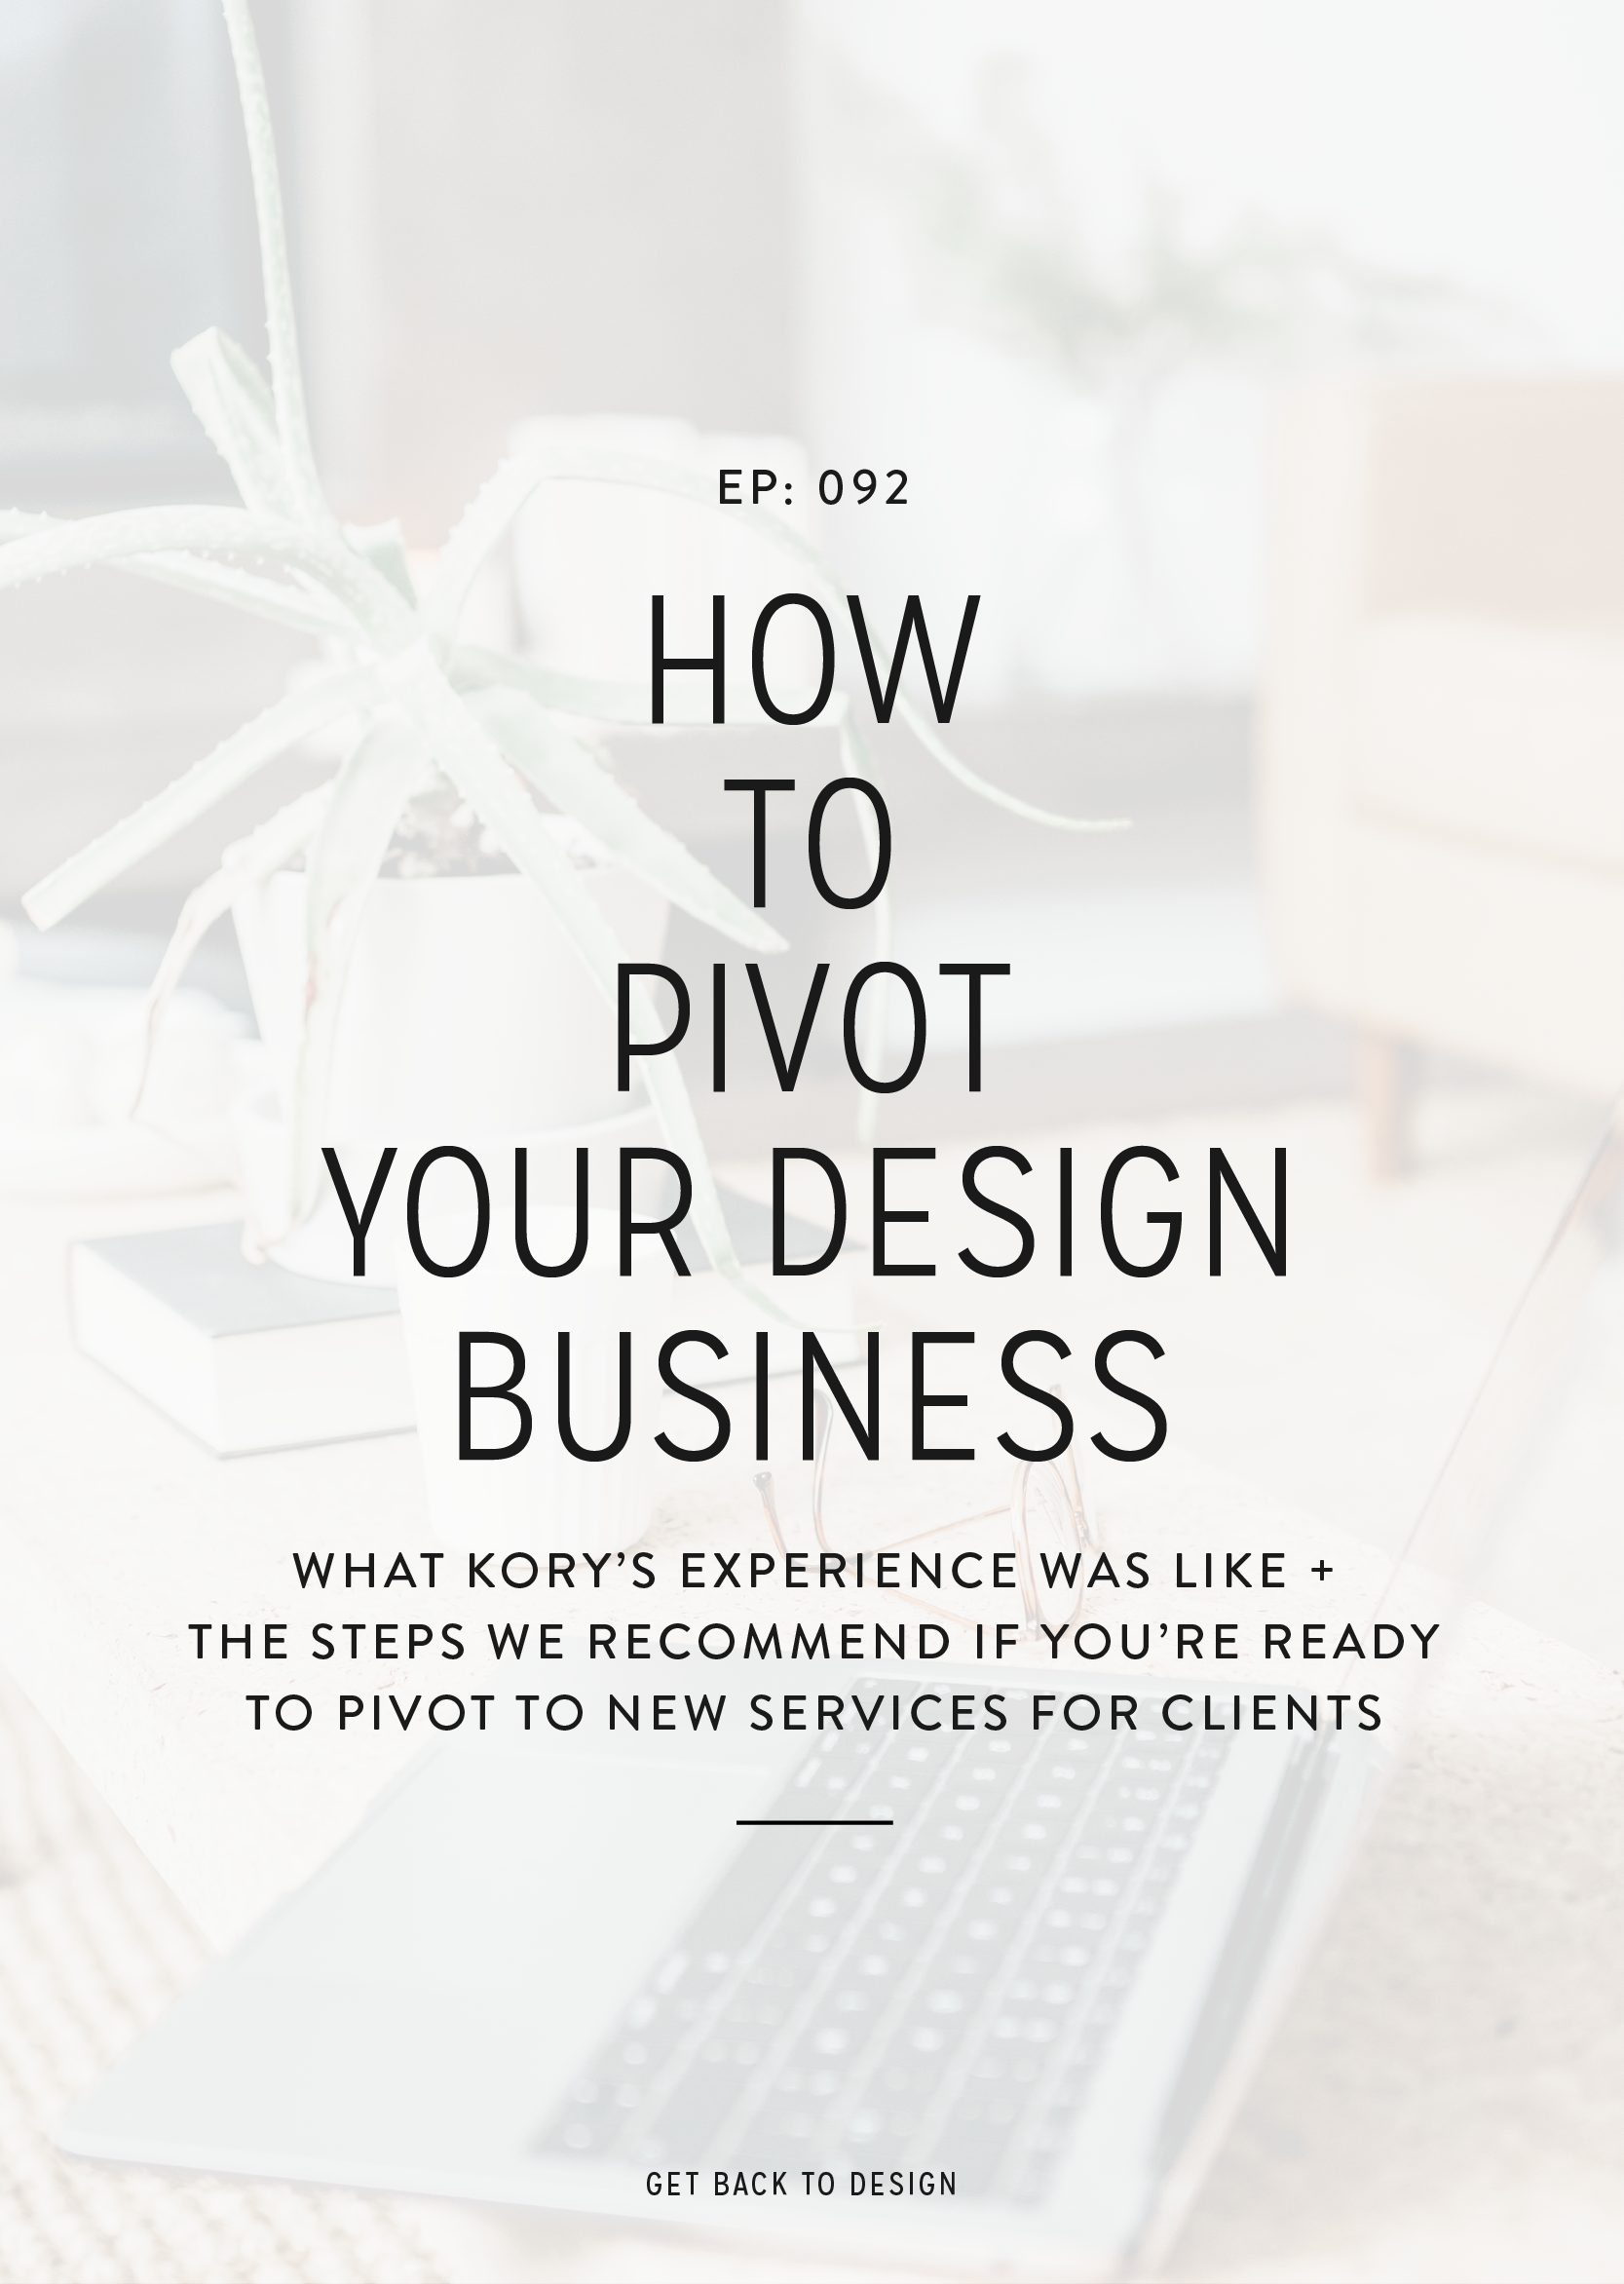 I thought it would be fun to share my experience of pivoting my business to show you that it's okay to pivot and the steps that I took to do that.